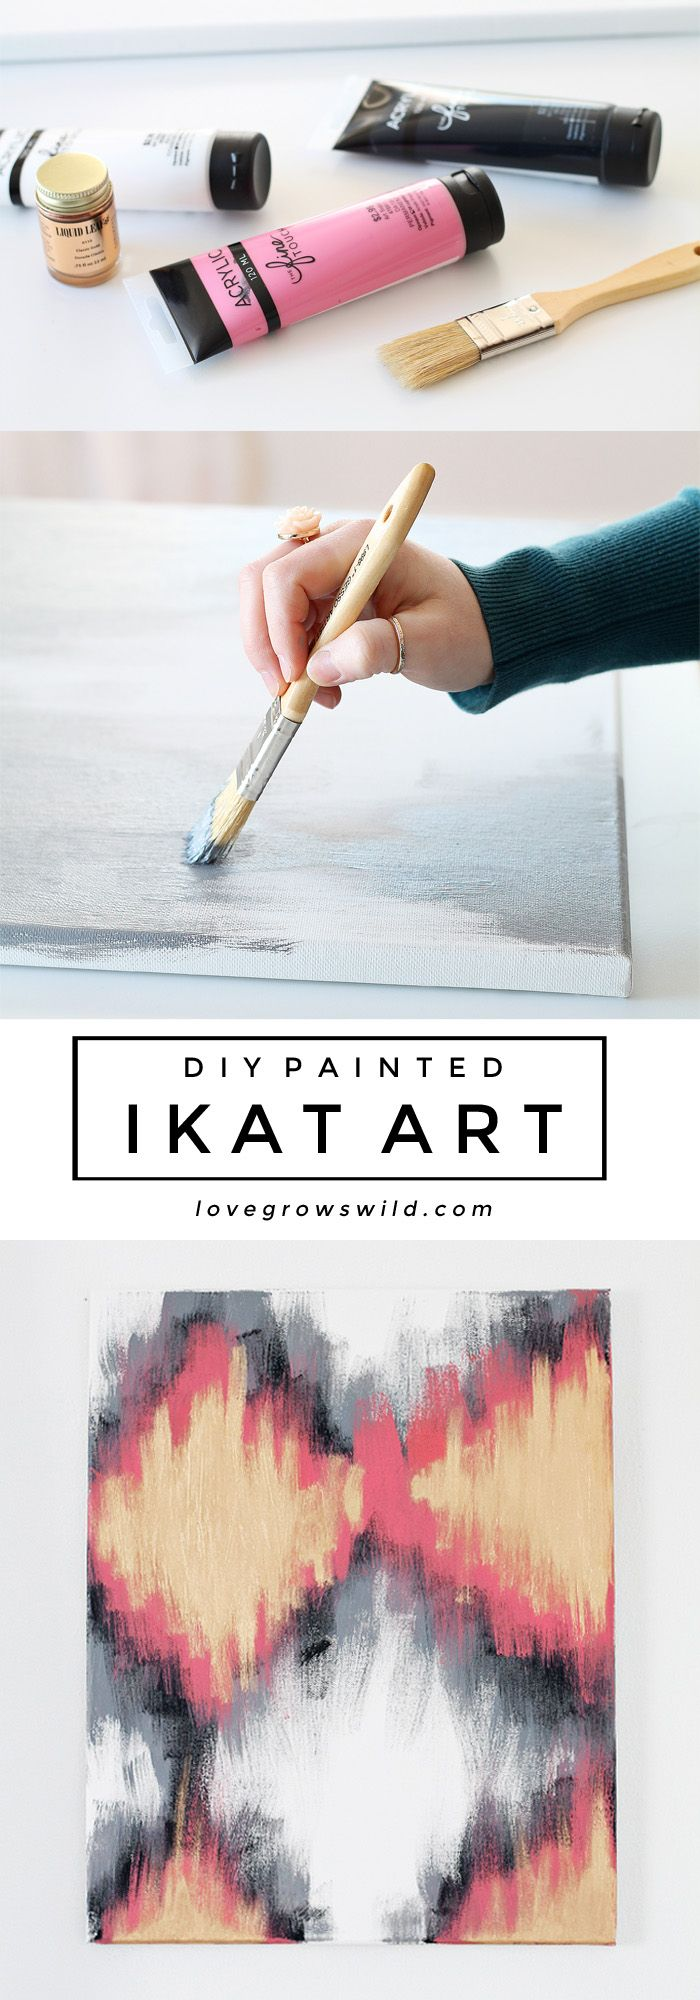 DIY Painted Ikat Art - Creating your own custom artwork is easy! Just follow these step-by-step instructions at LoveGrowsWild.com